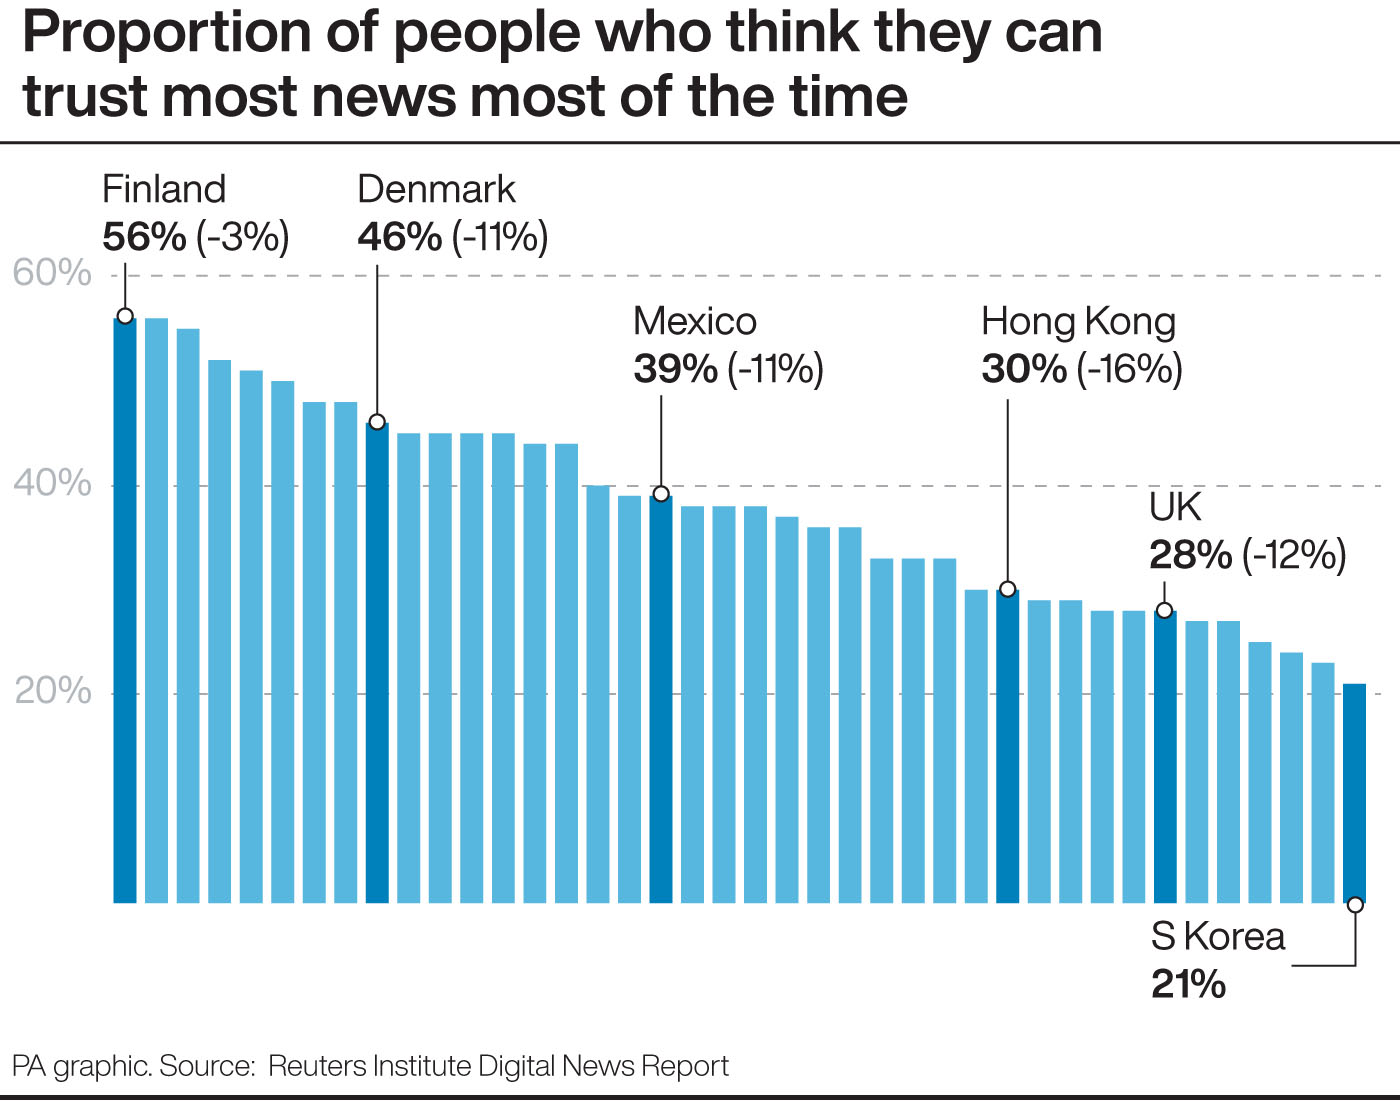 Proportion of people who think they can trust most news most of the time